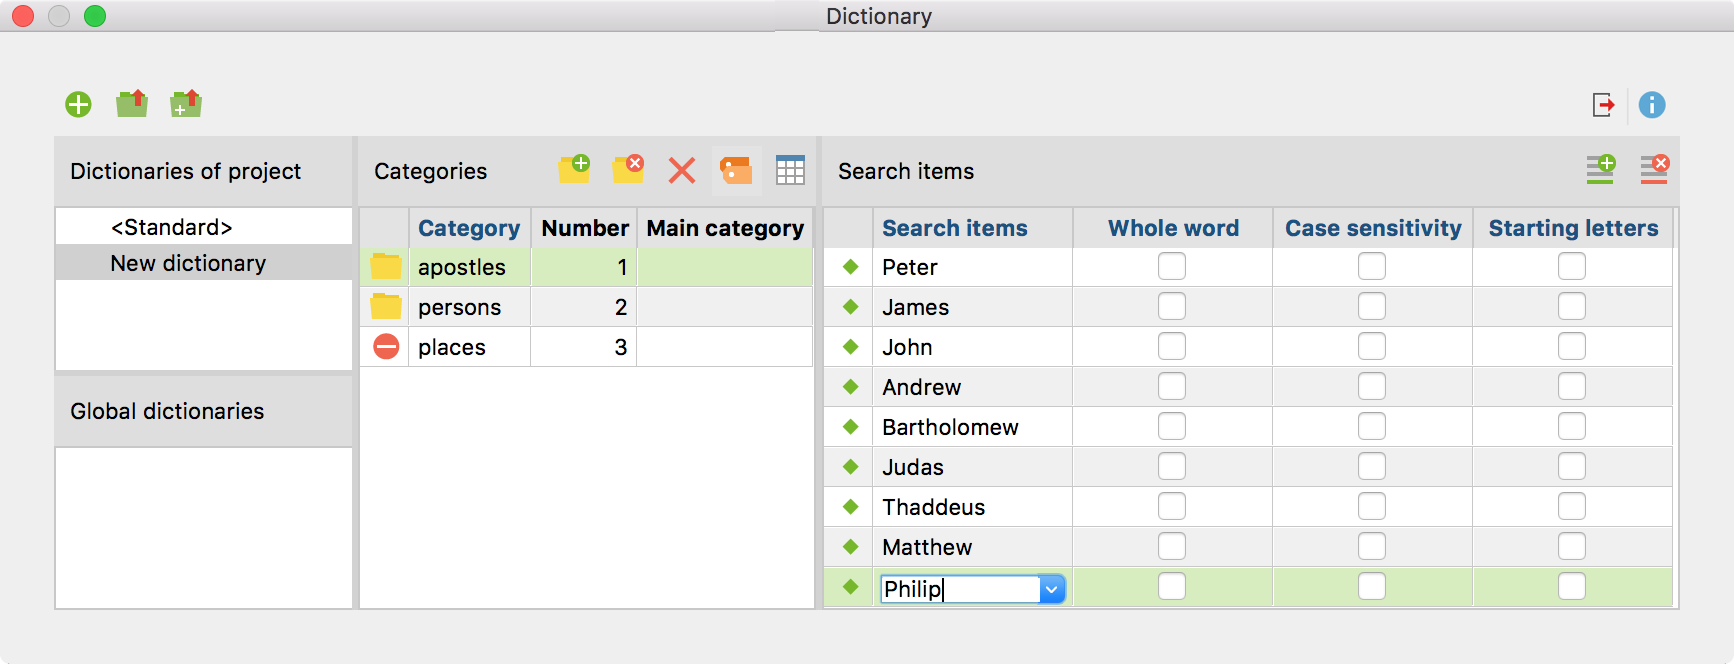 A new search item is added to the category system